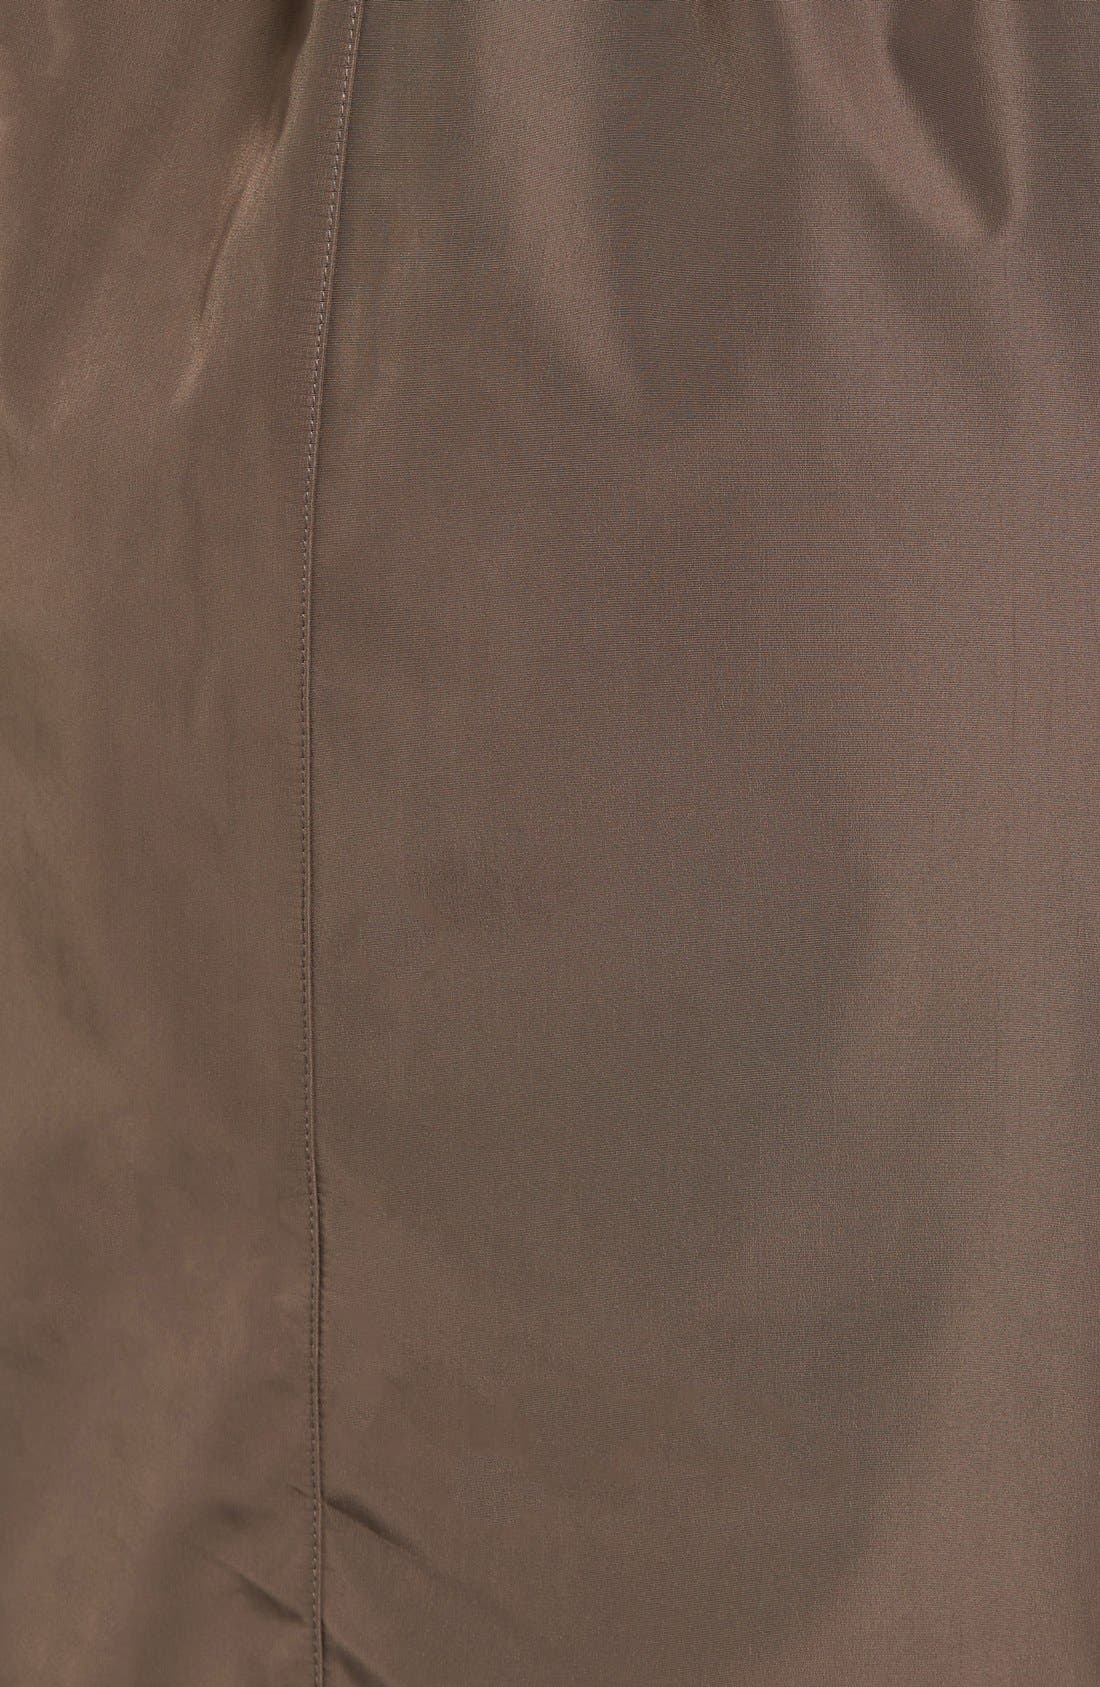 Hooded Trench Coat,                             Alternate thumbnail 5, color,                             Dark Taupe